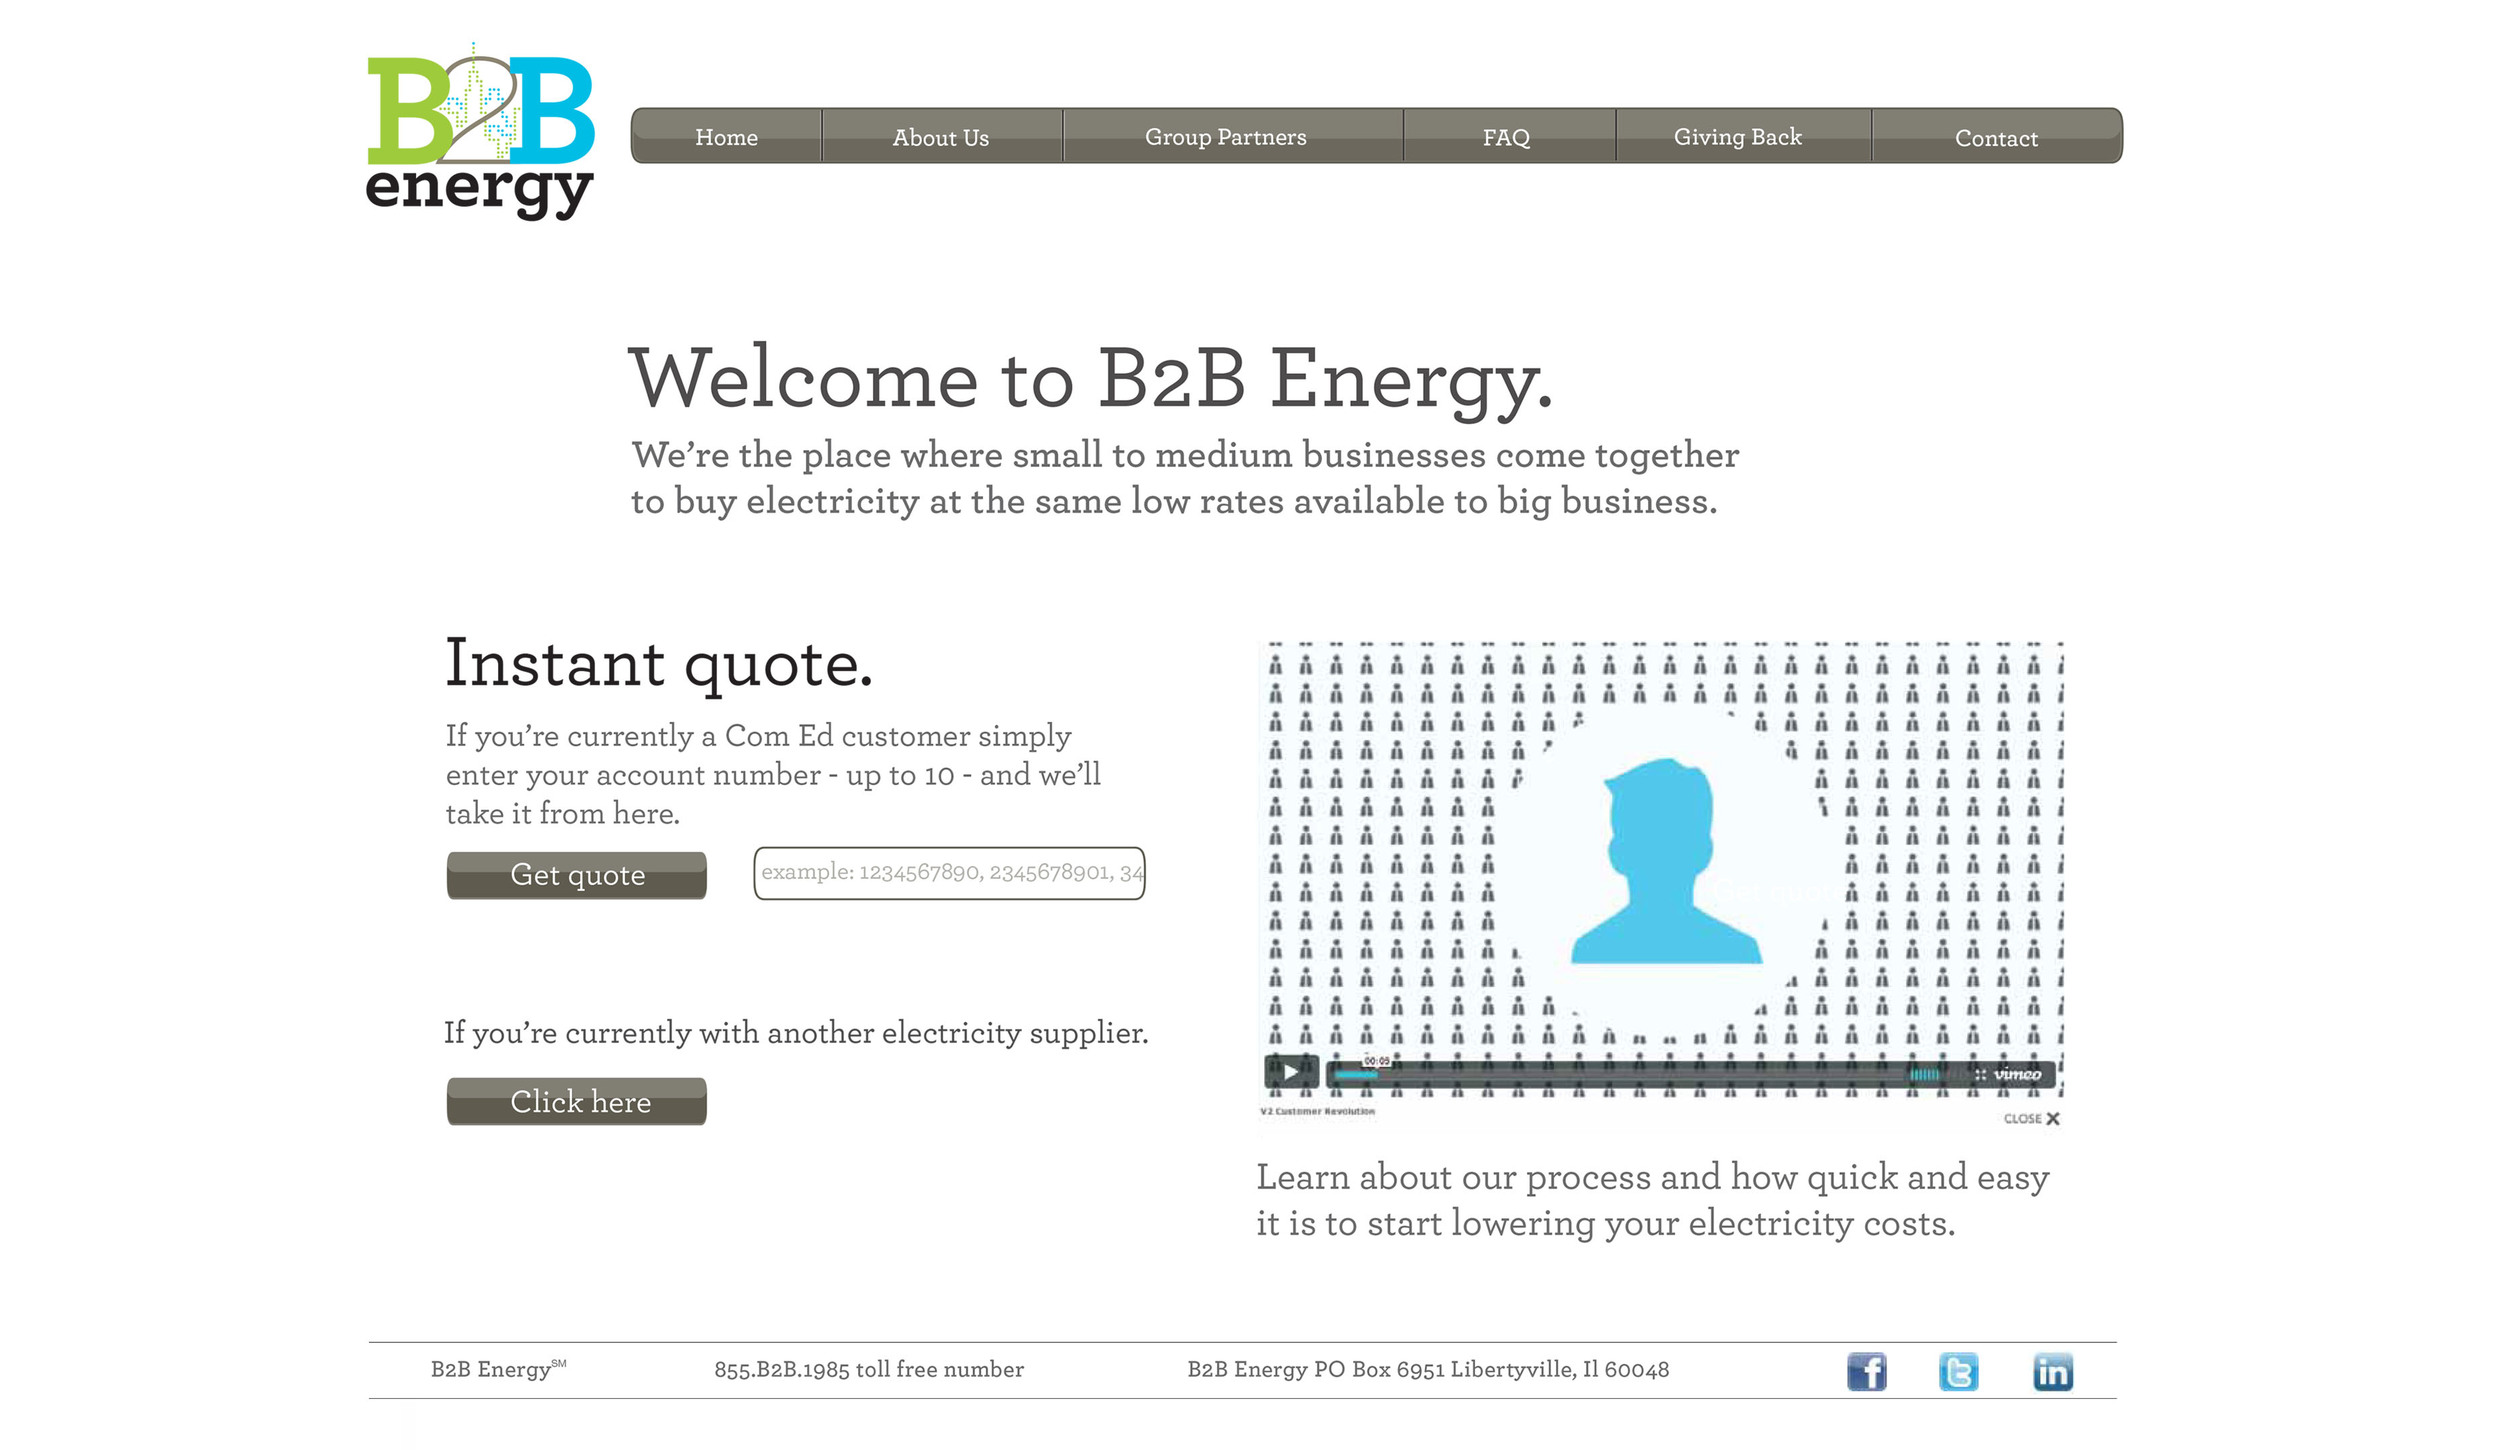 B2B Energy - Website Sign Up Page